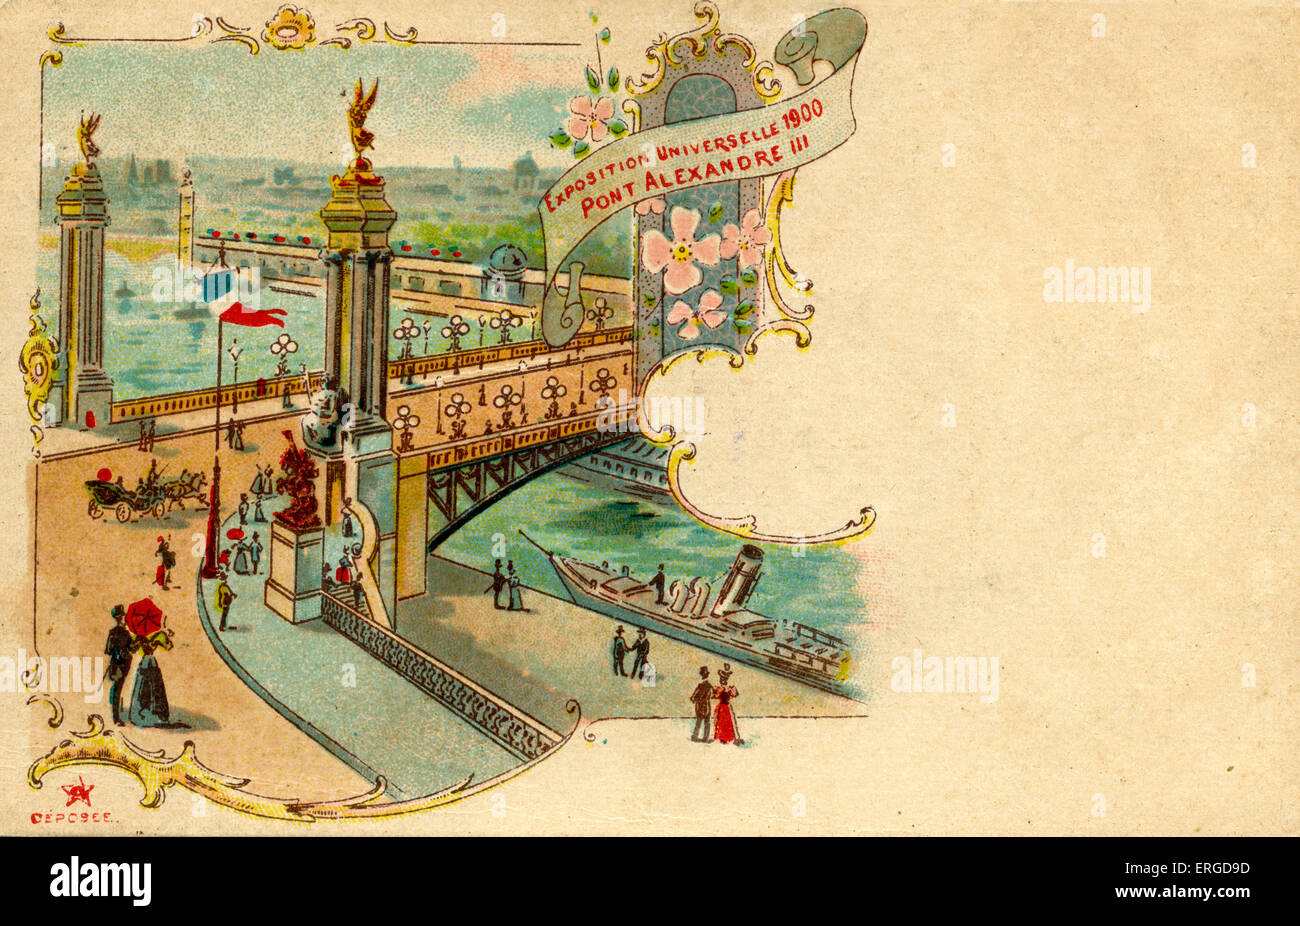 Paris Exposition Universelle, 1900. With view of Pont Alexandre III and river Seine. - Stock Image